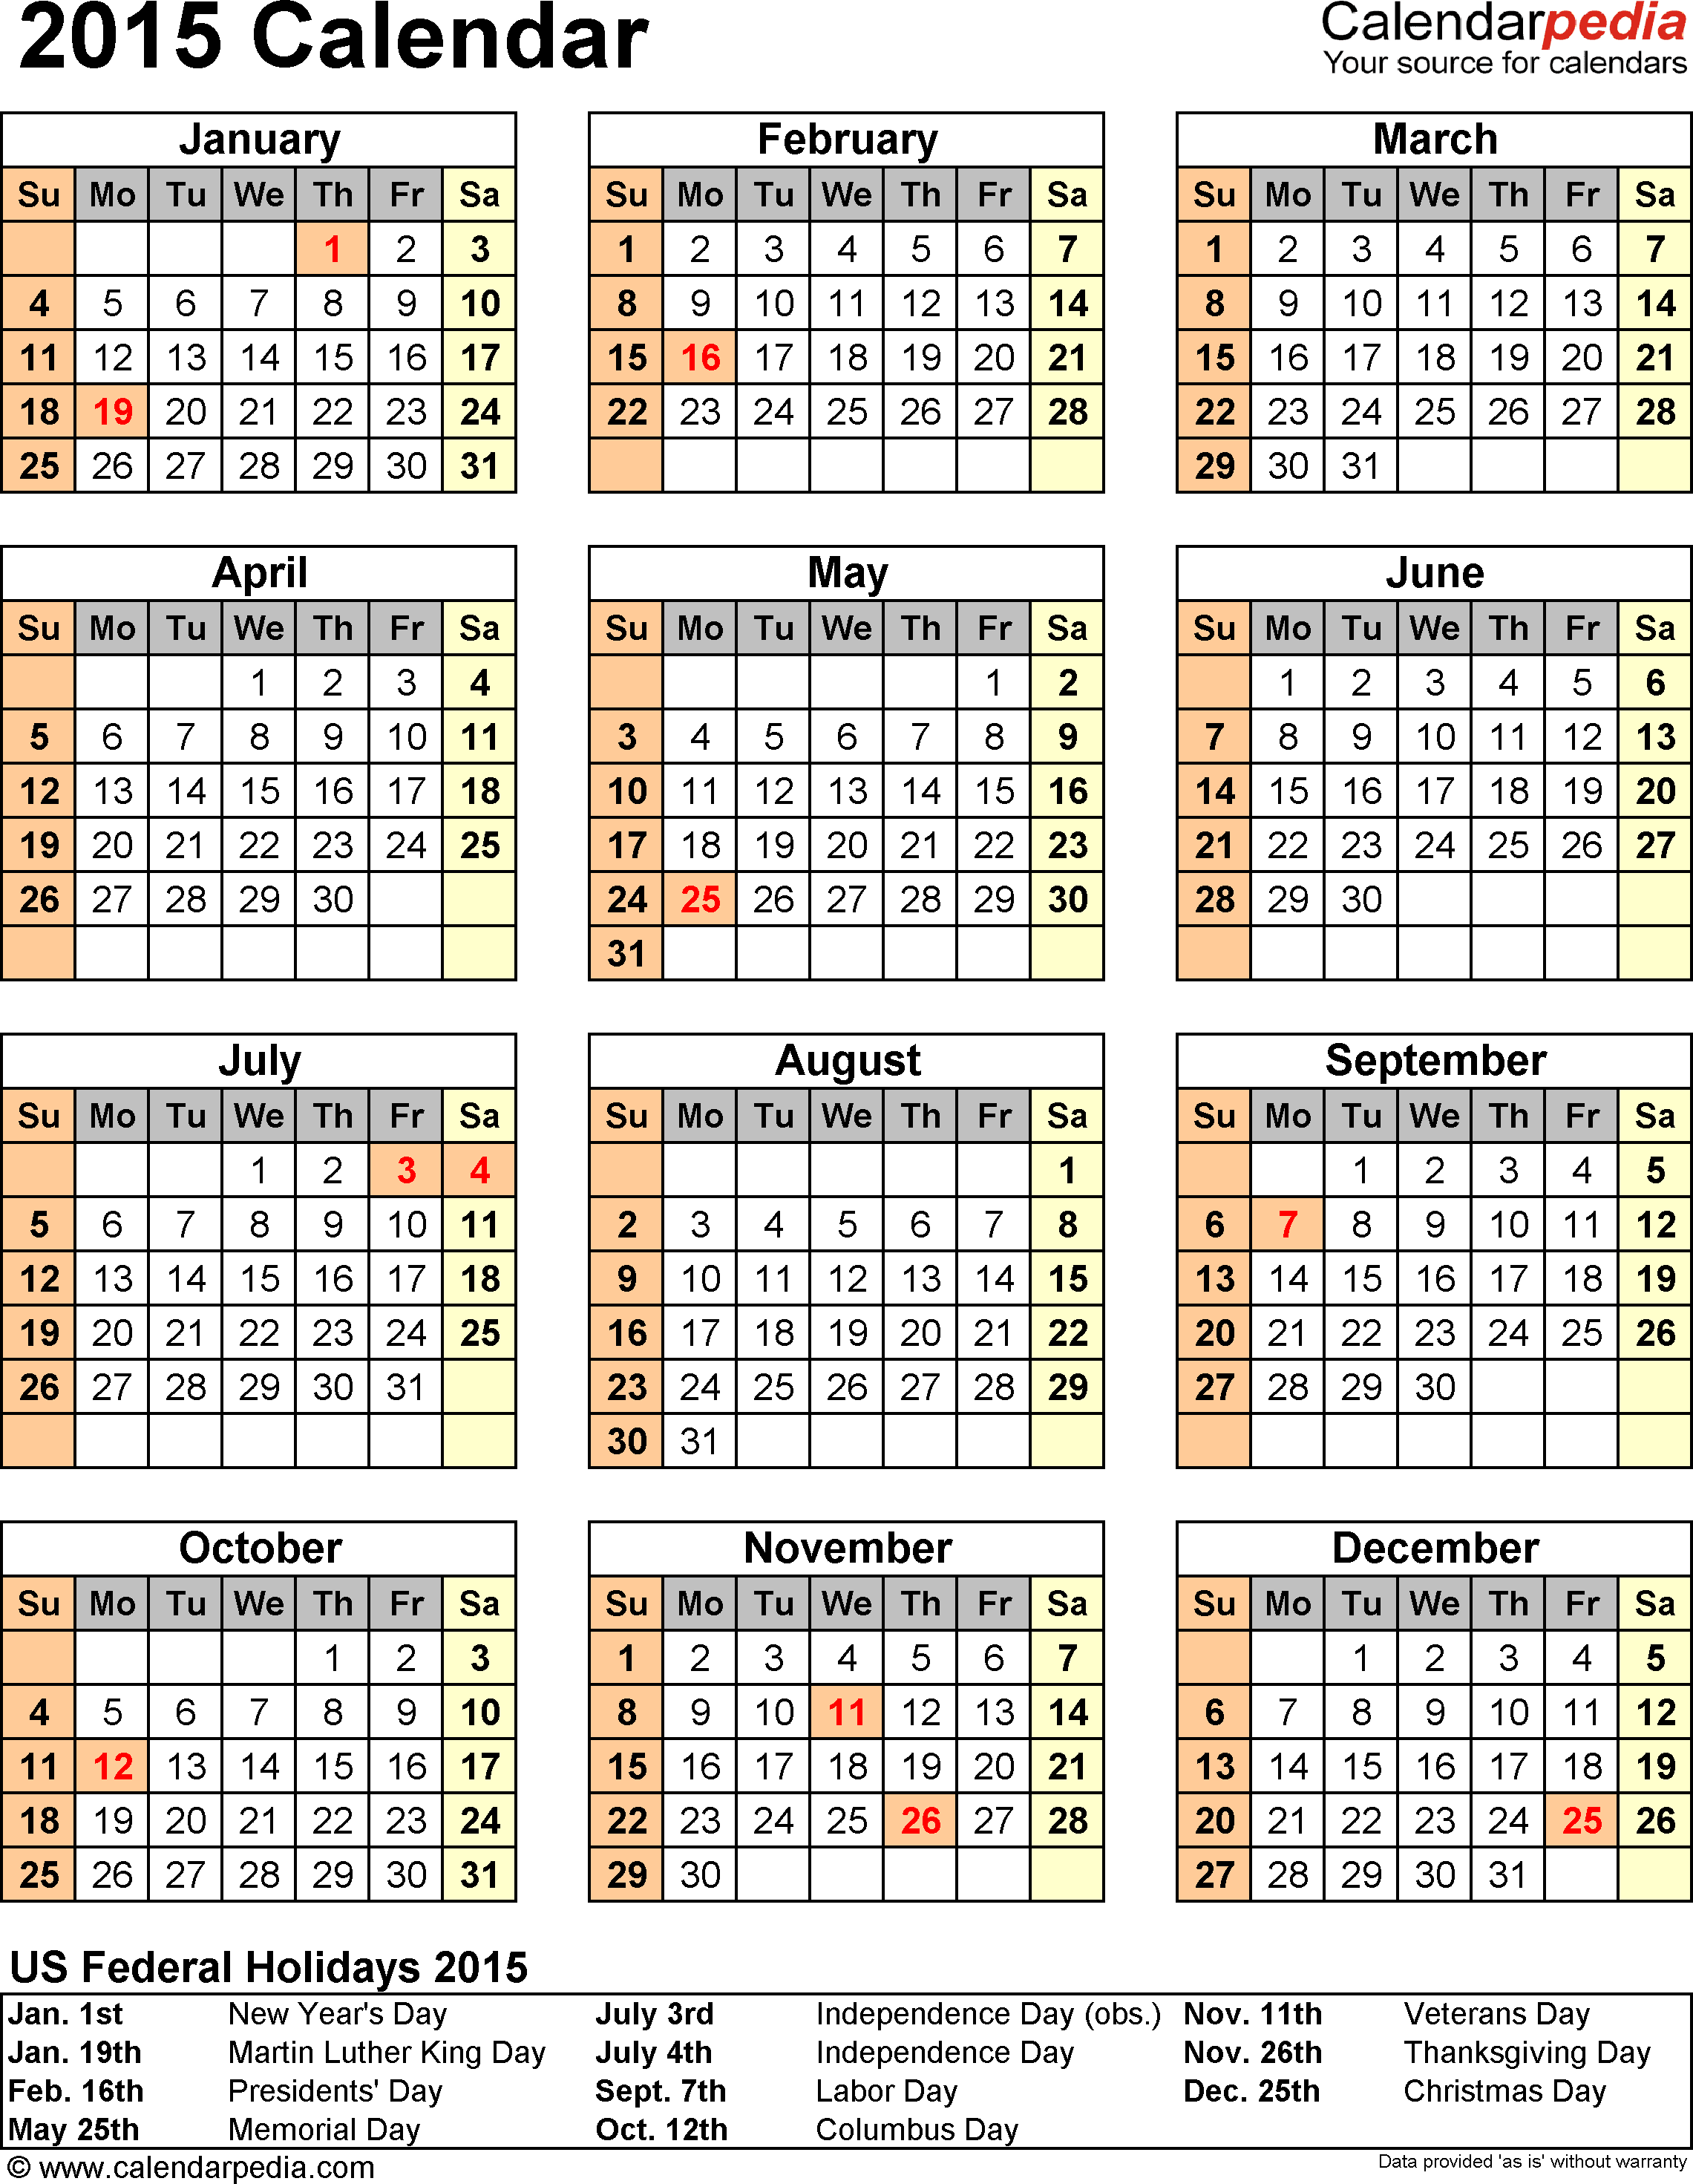 Download PDF template for 2015 calendar template 11: portrait orientation, 1 page, with US federal holidays 2015, with US federal holidays 2015, paper format: US letter